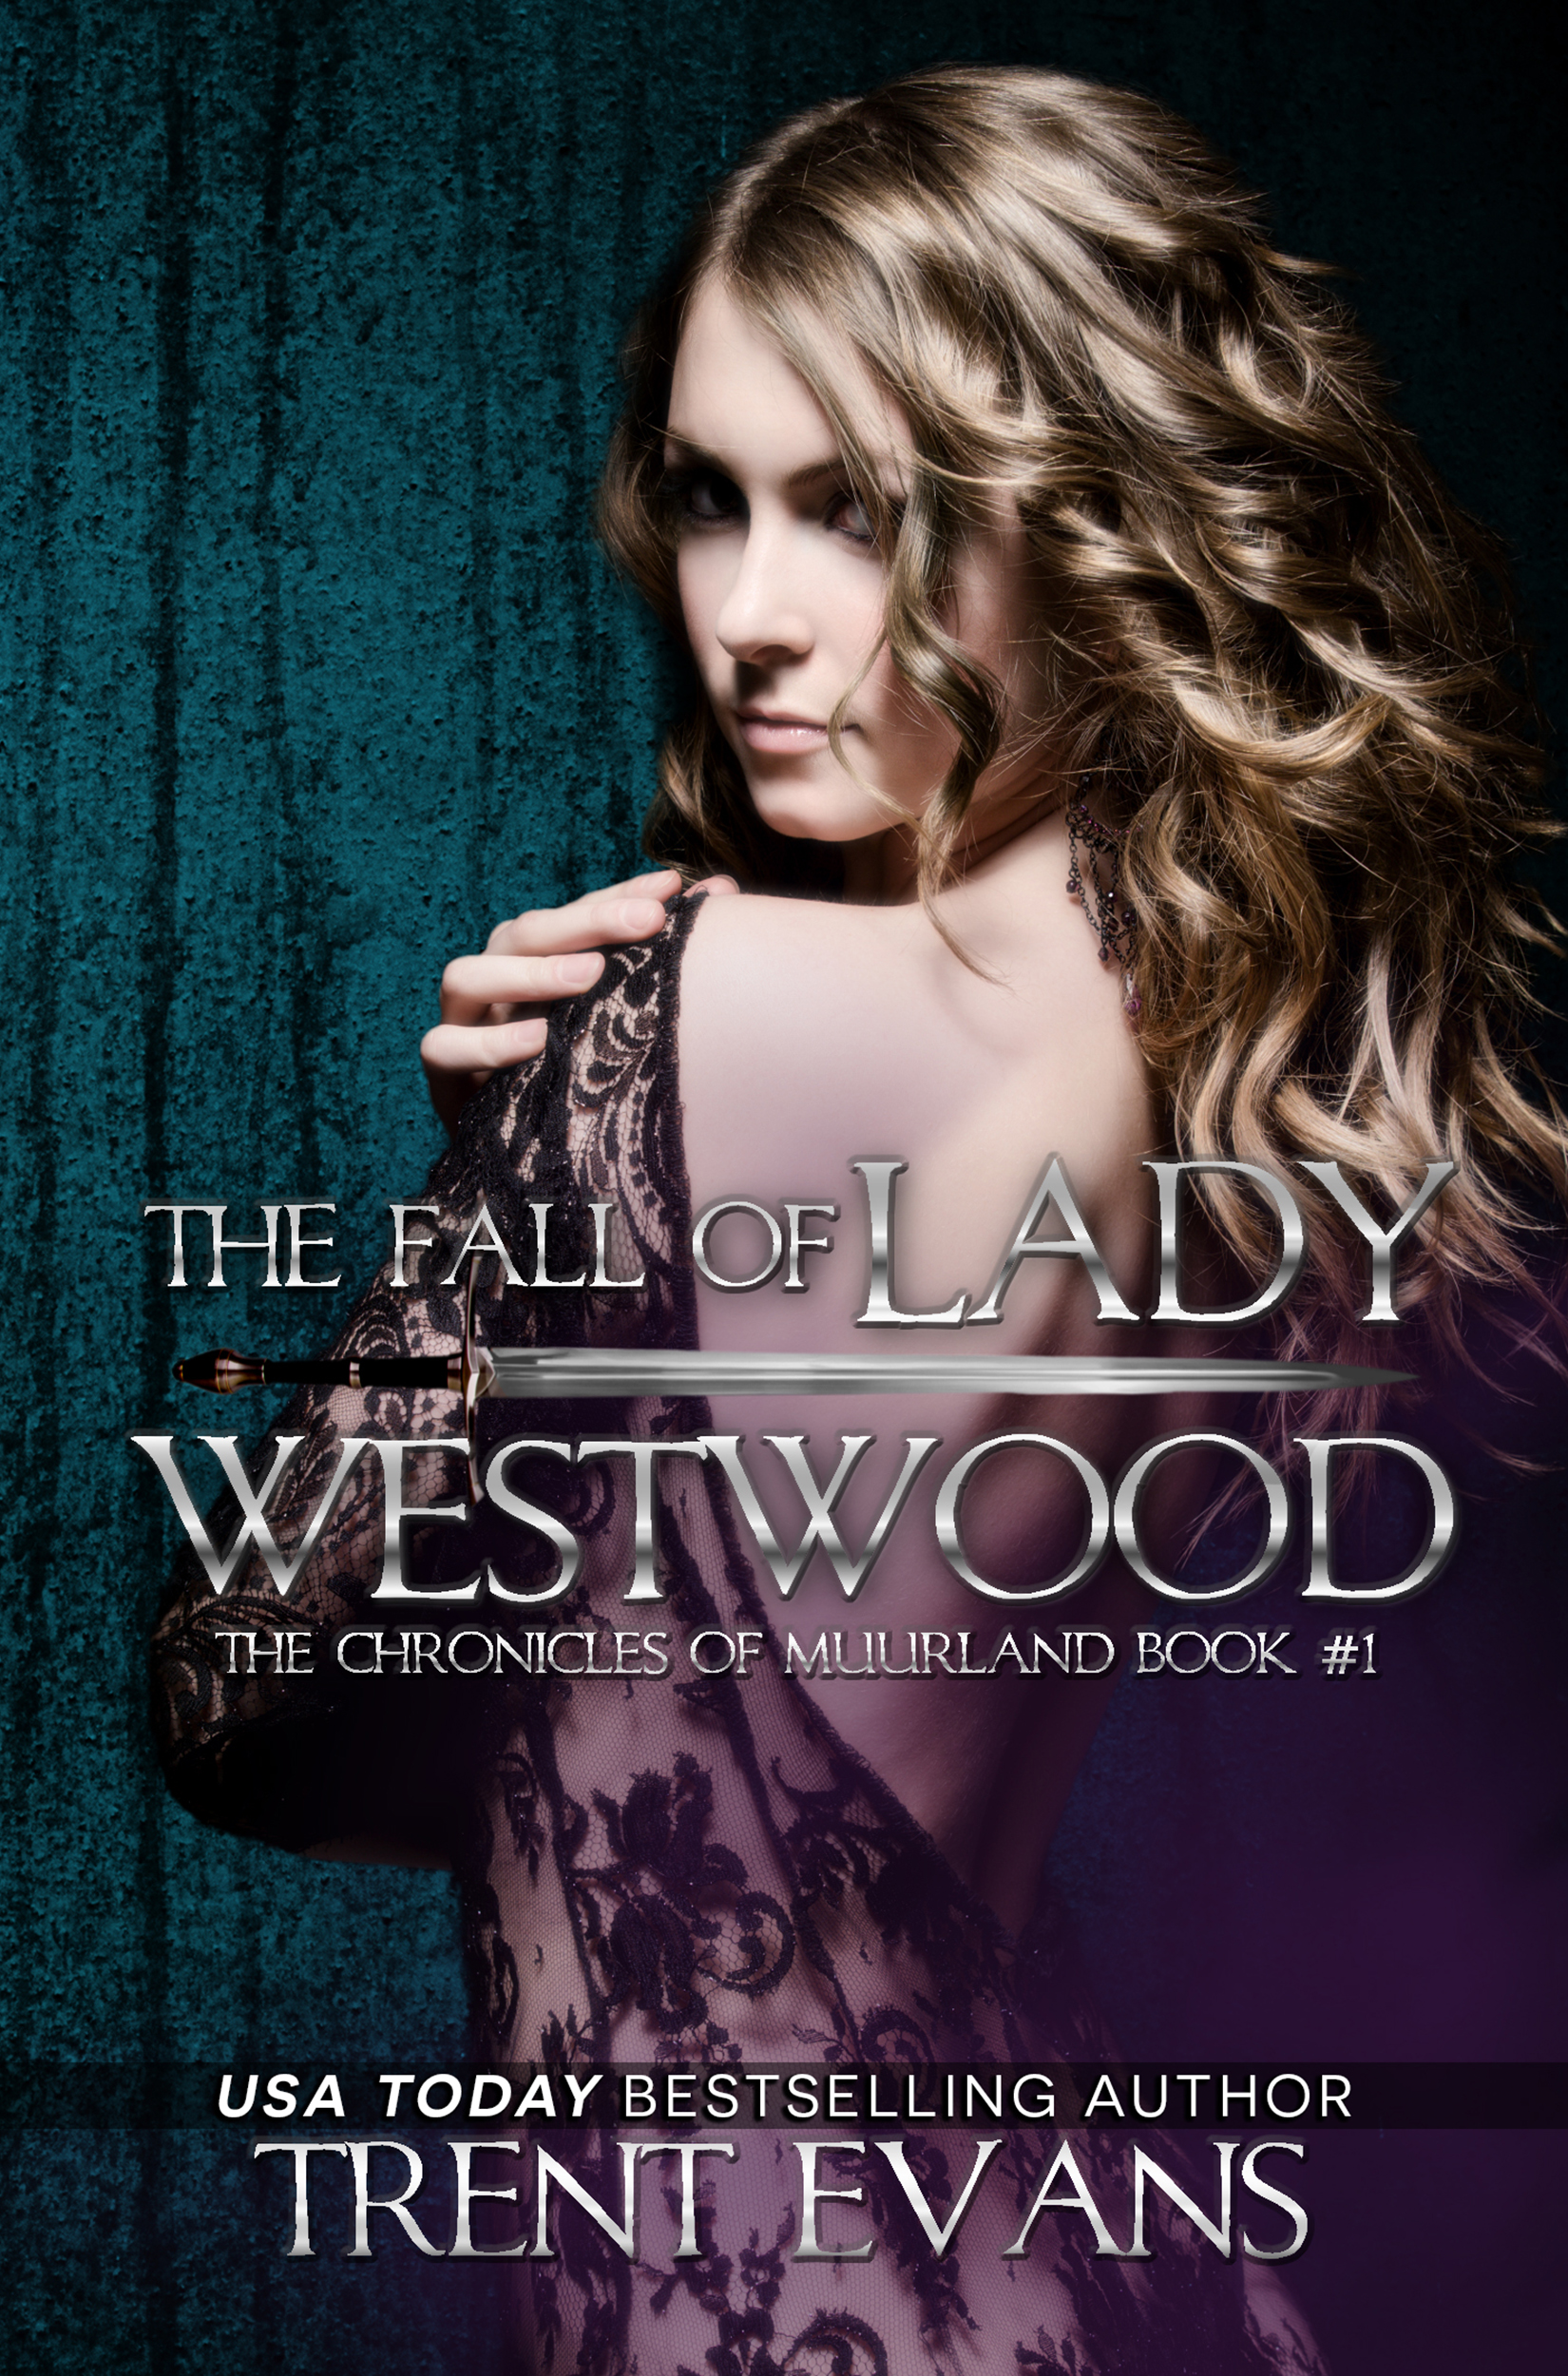 The Fall of Lady Westwood